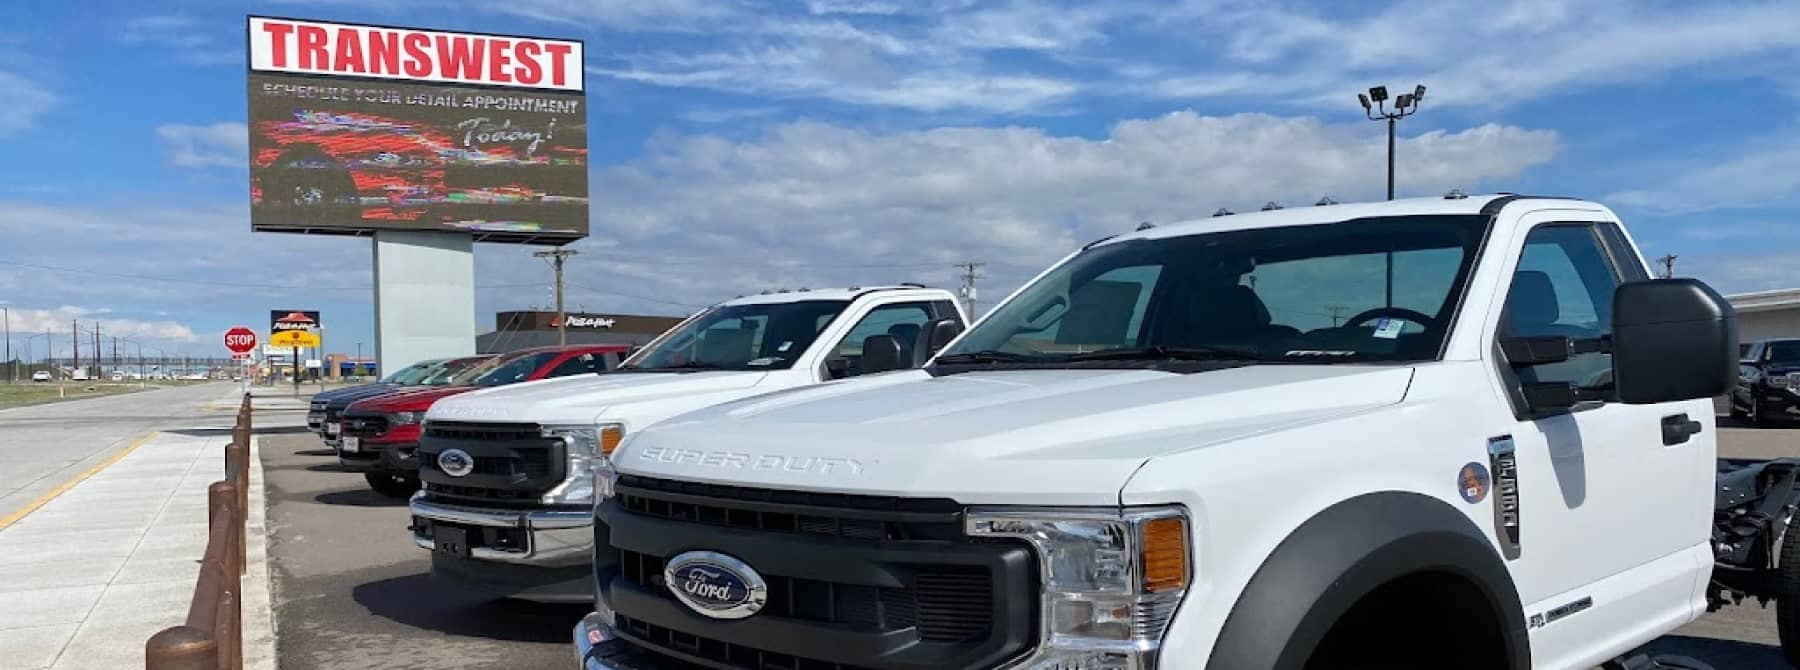 Transwest Ford Exterior